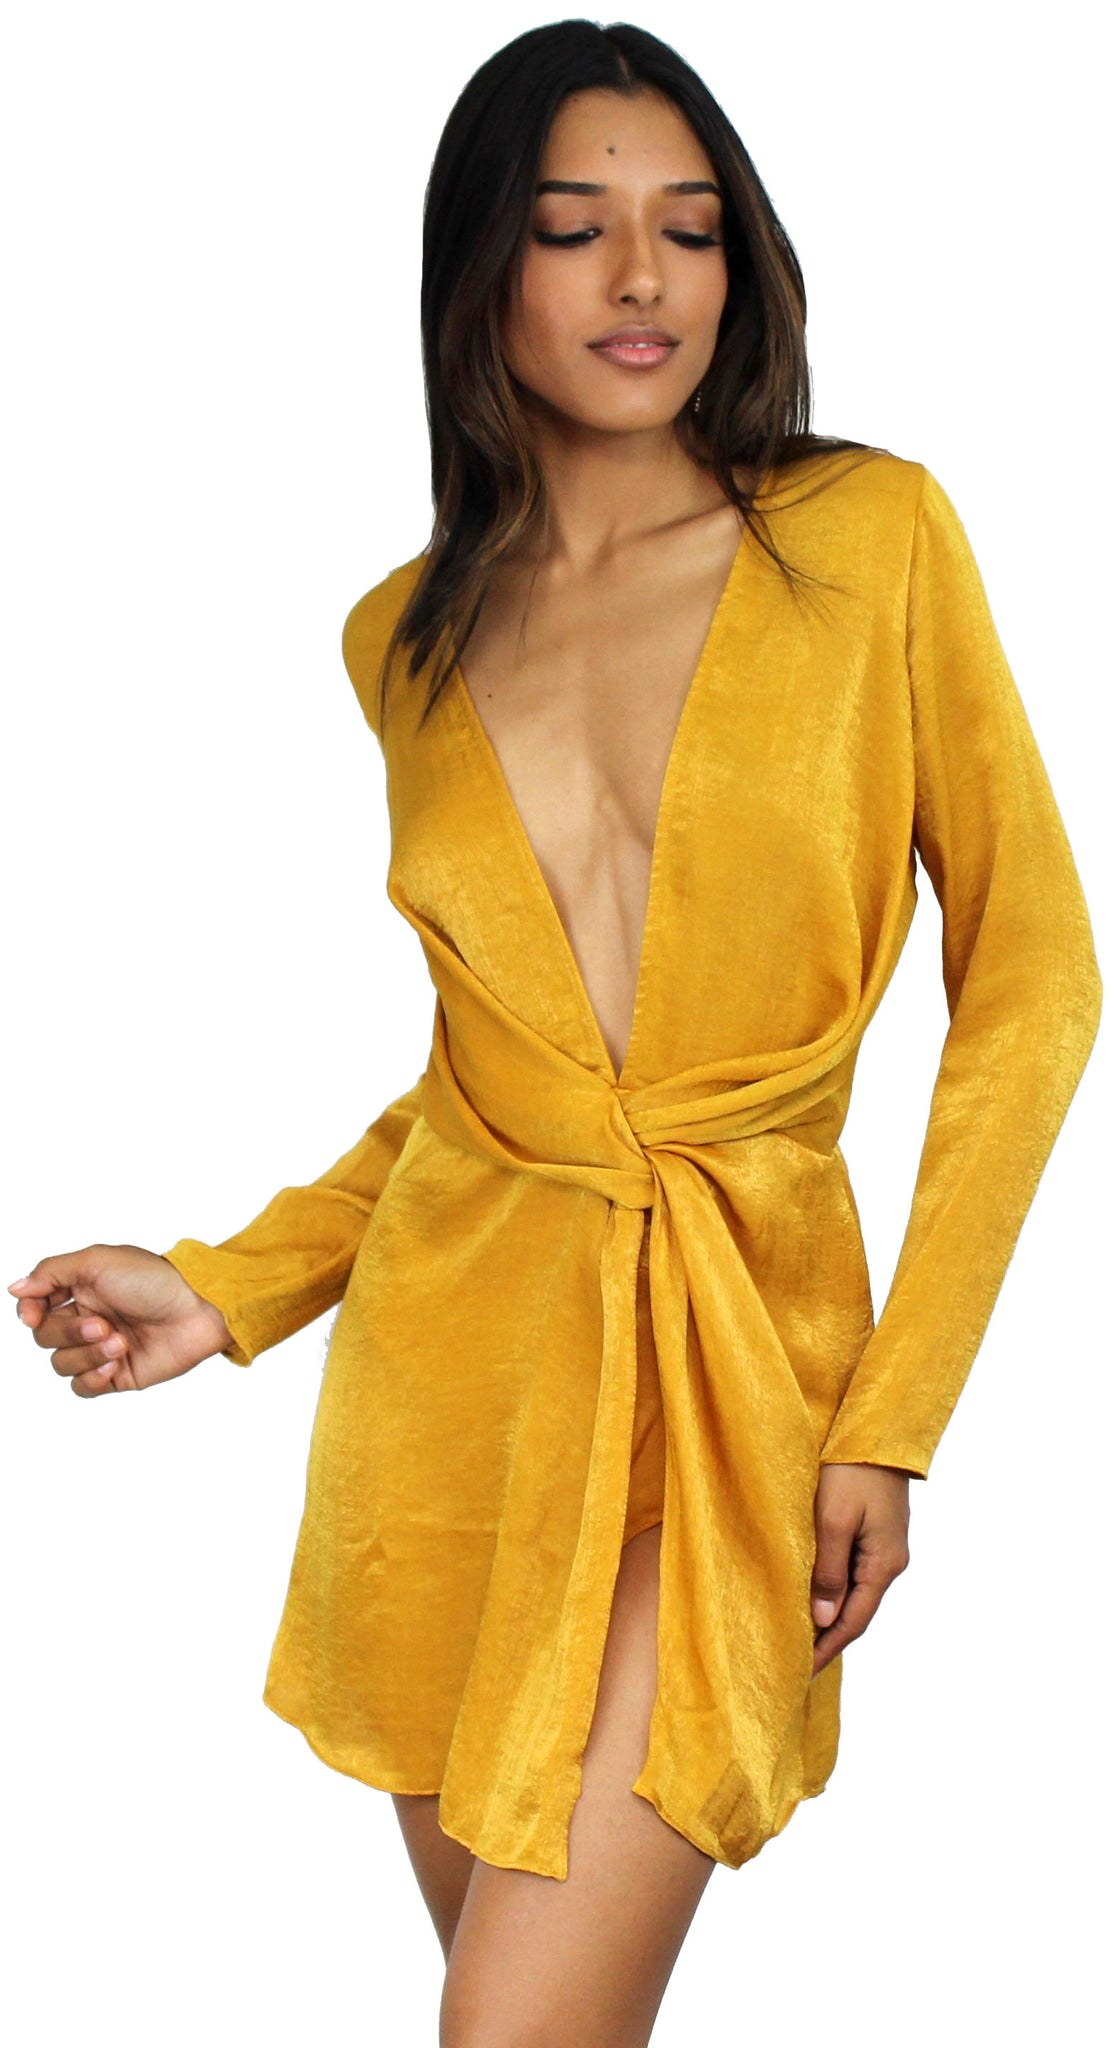 Get Kylie's Look with Mustard Satin Dress